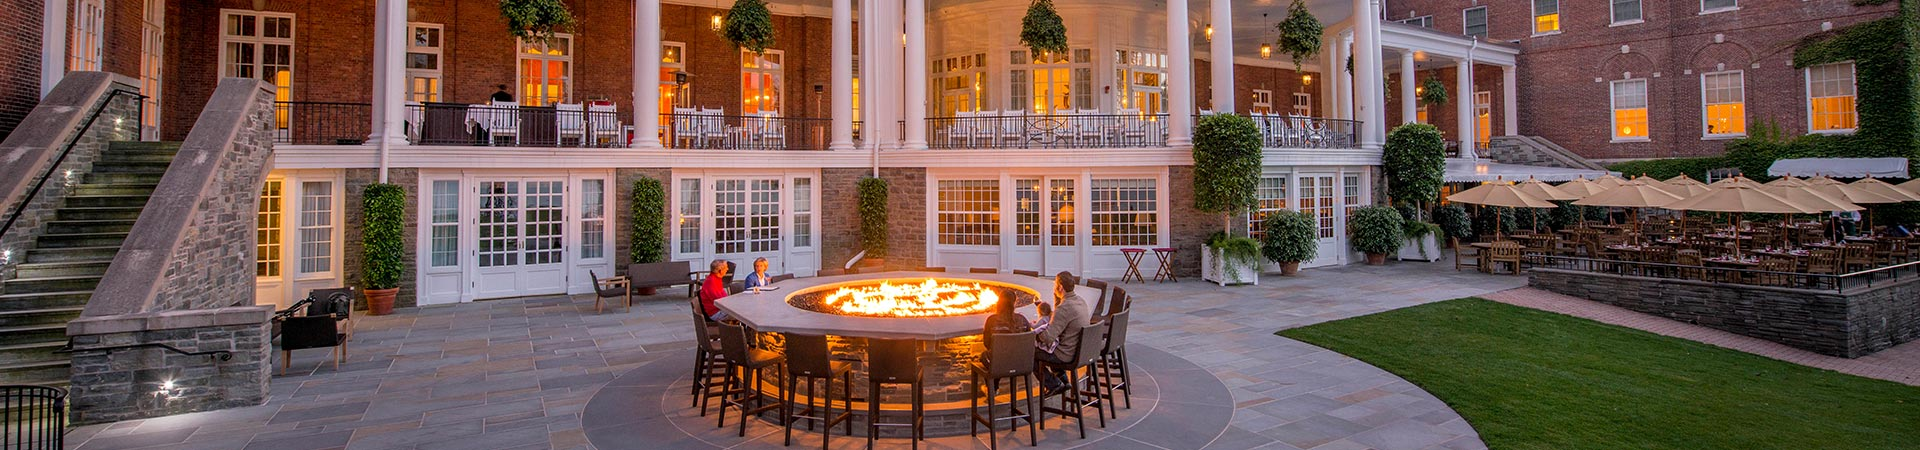 Fire Bar in The Otesaga Resort Hotel Cooperstown, New York